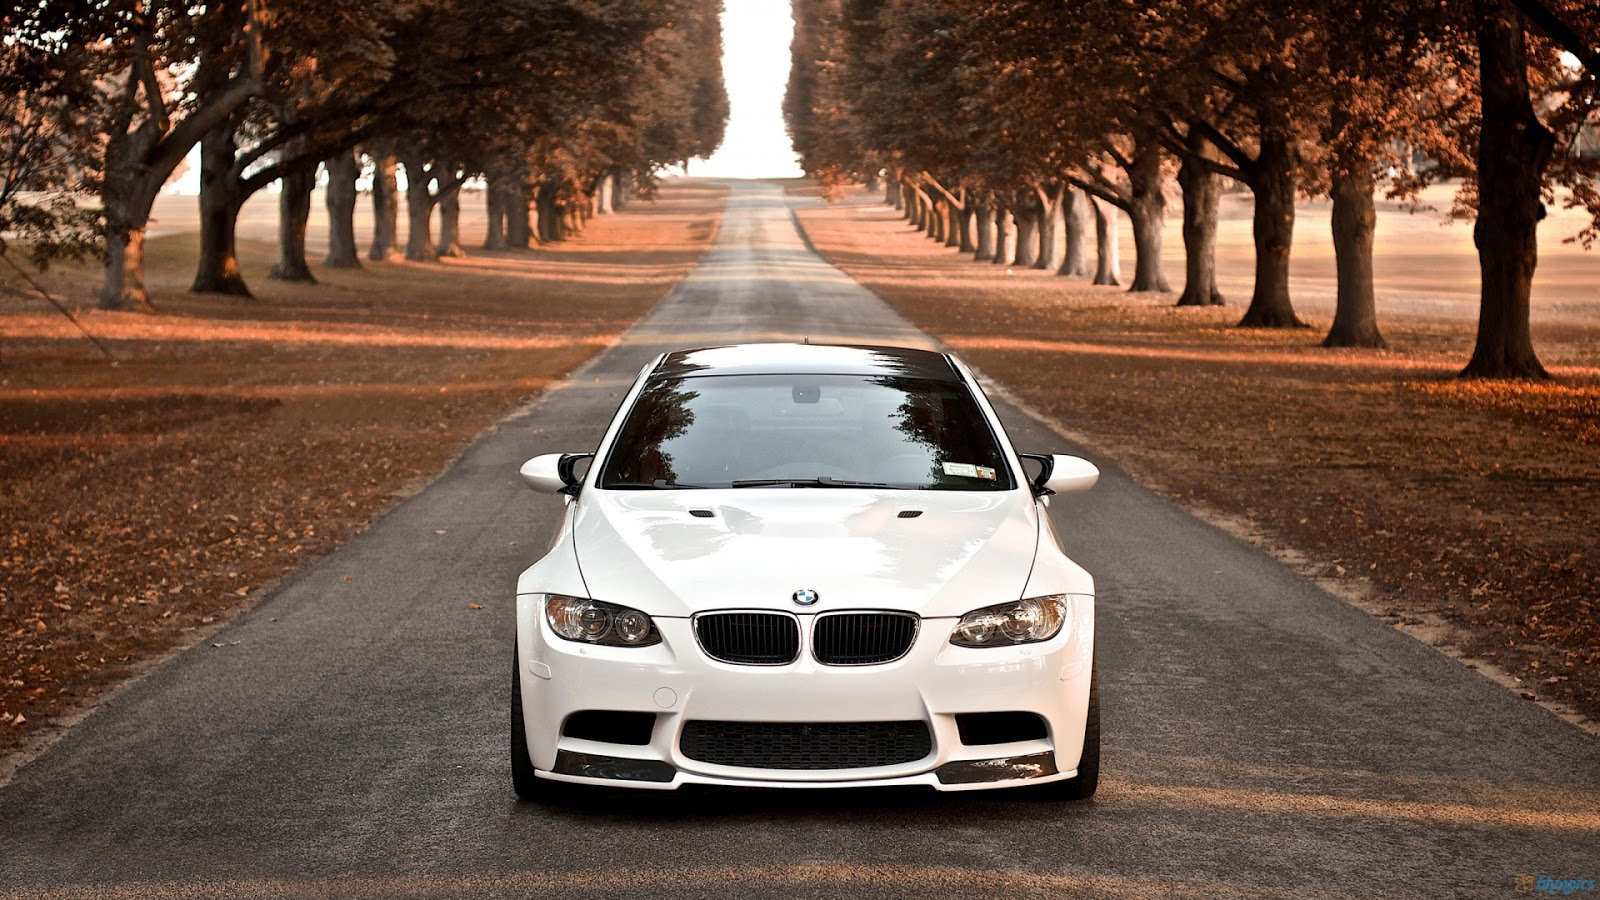 Wallpaper Bmw Wallpaper 1920x1080